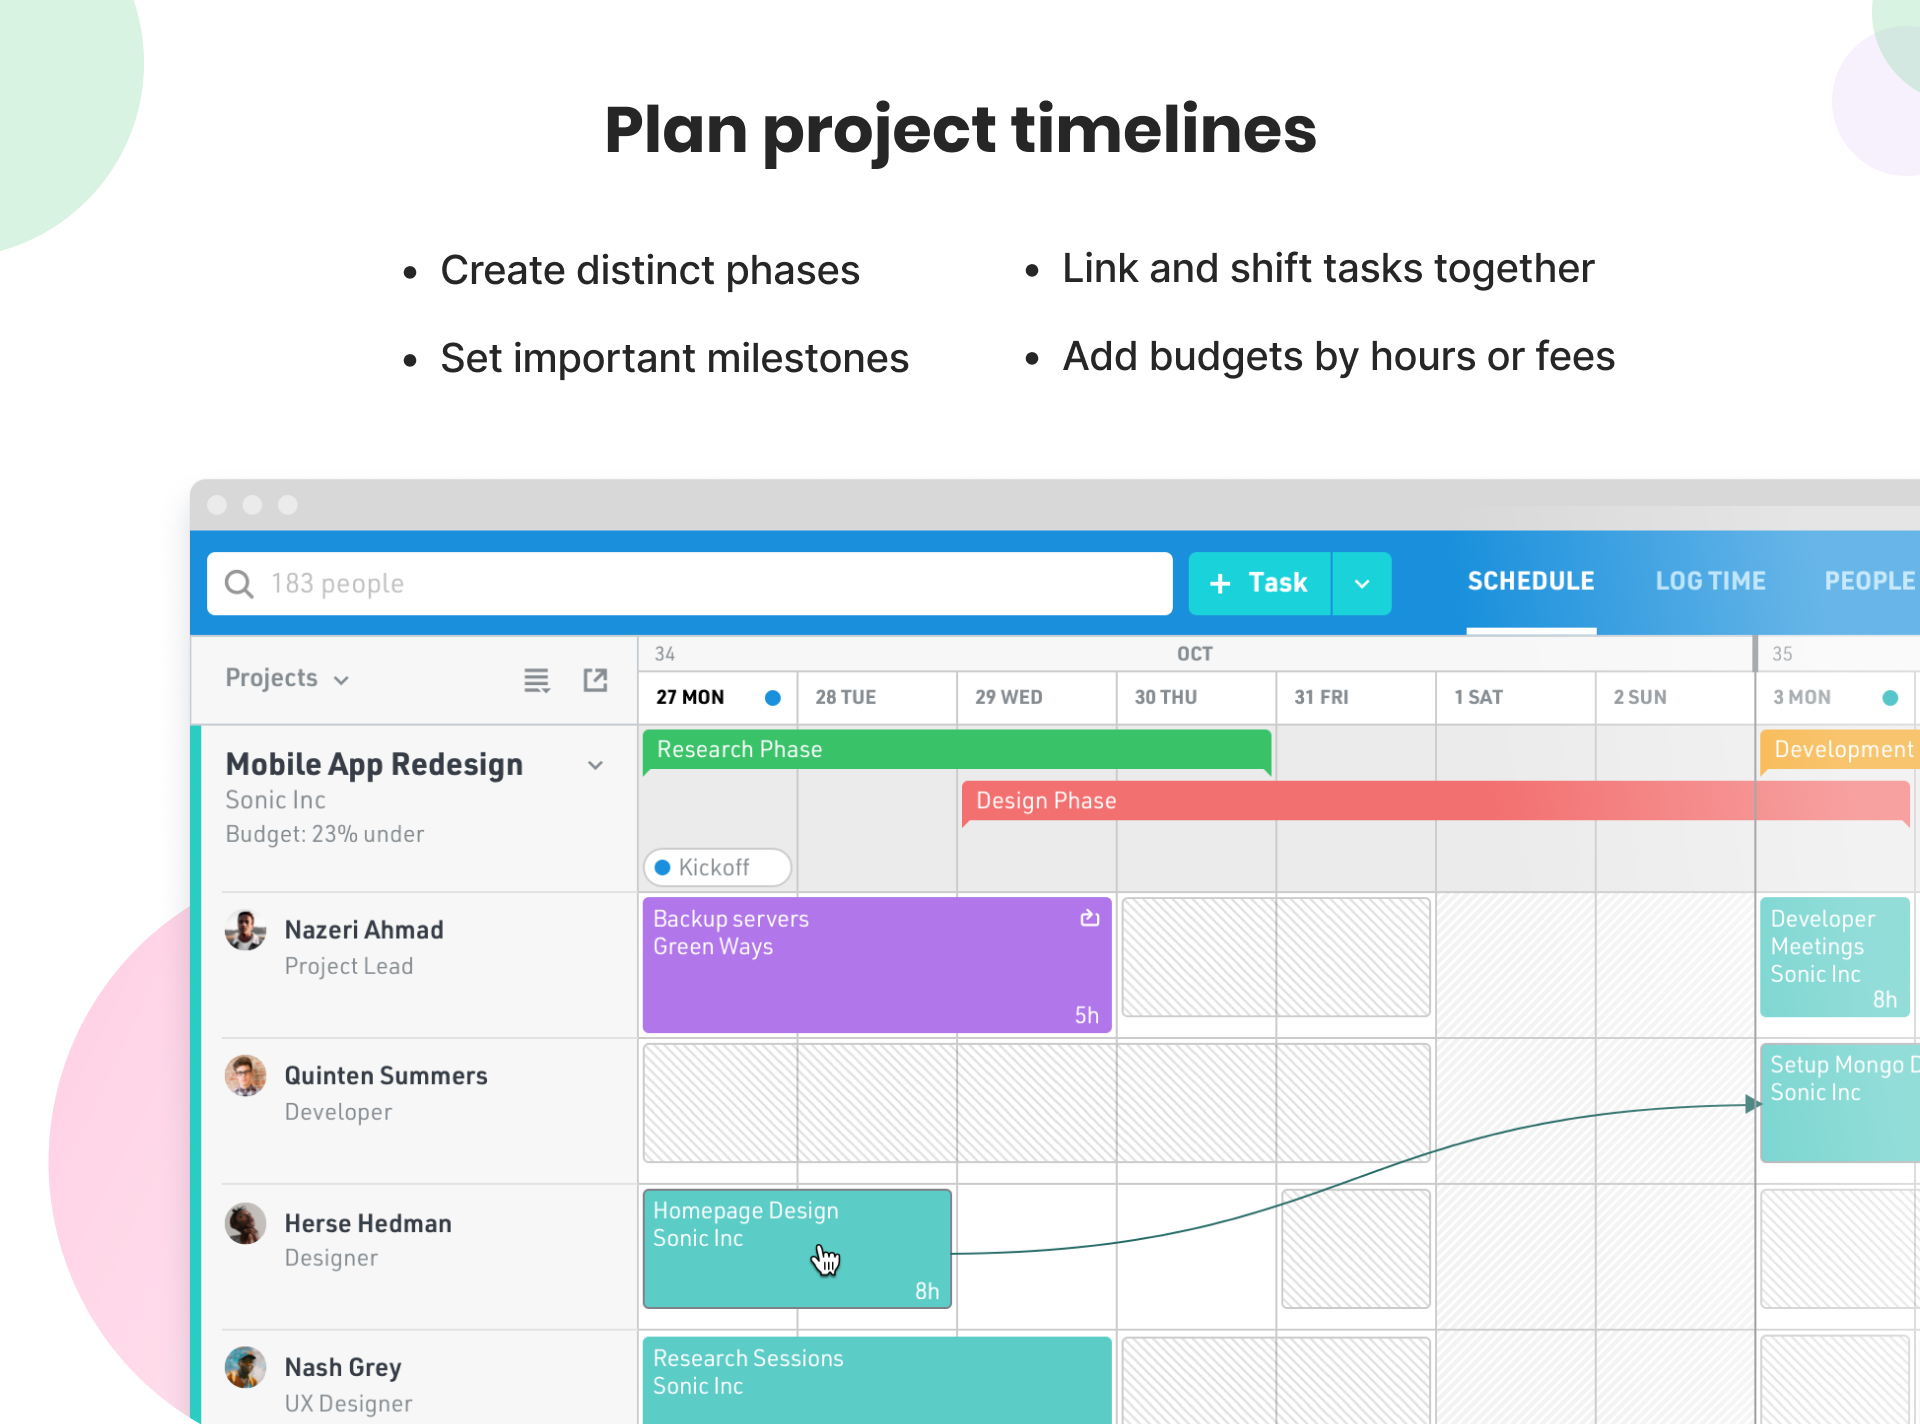 Float Software - Create and visualize project timelines and task dependencies